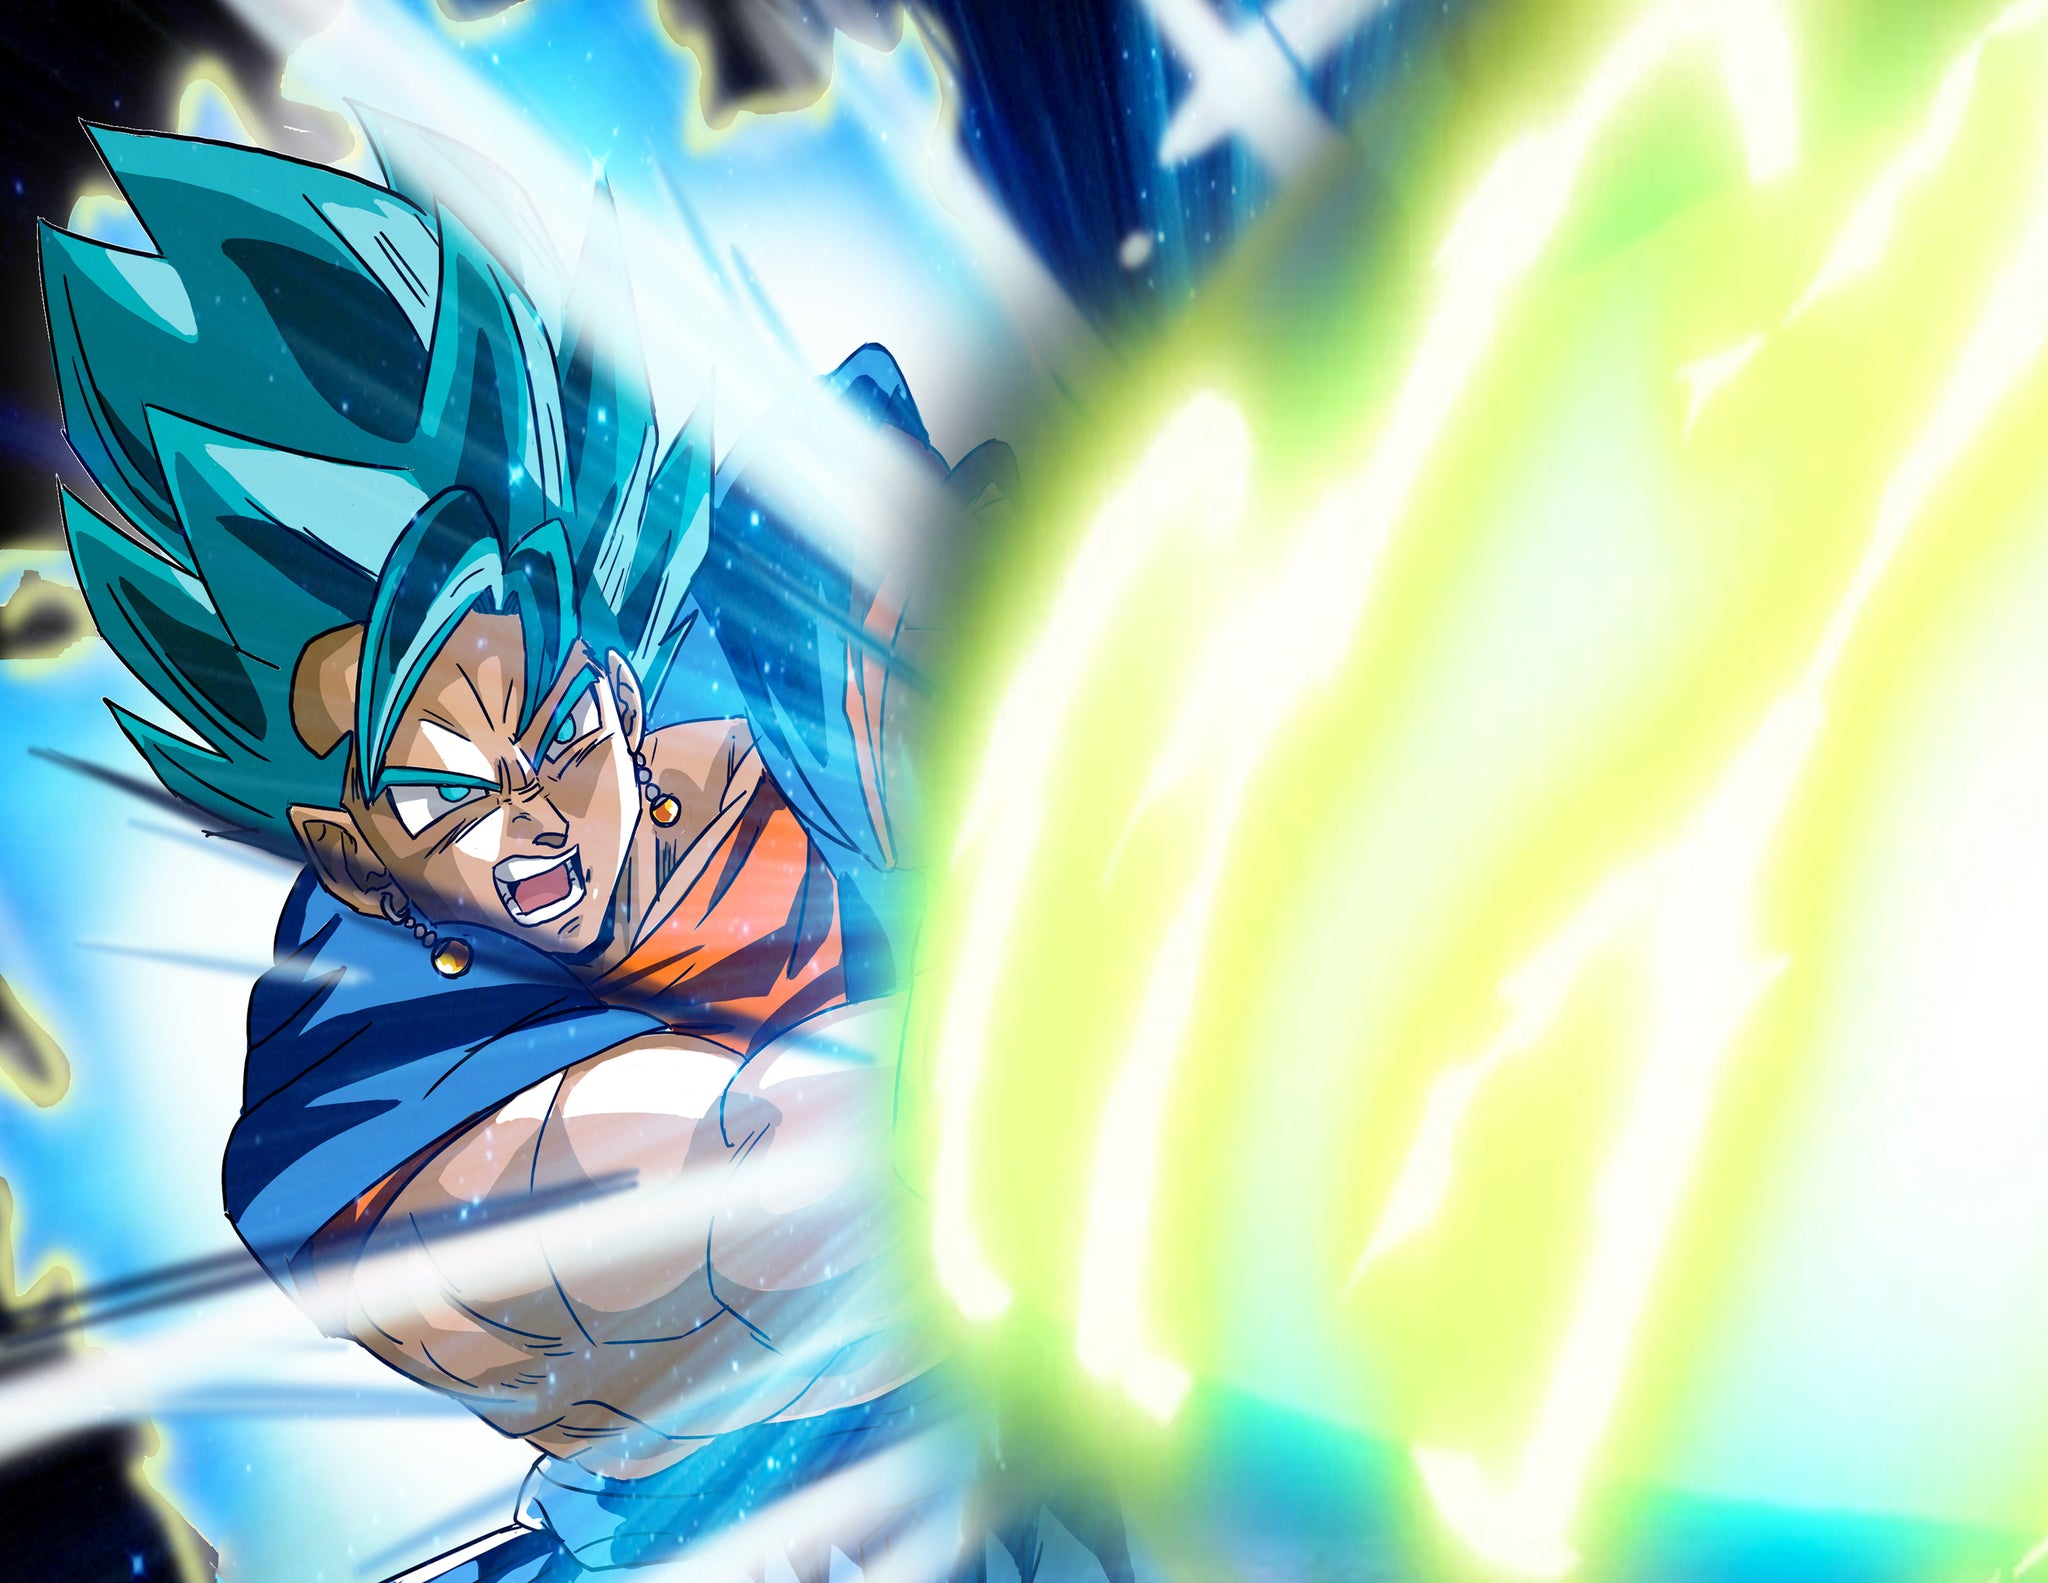 The Final Kamehameha